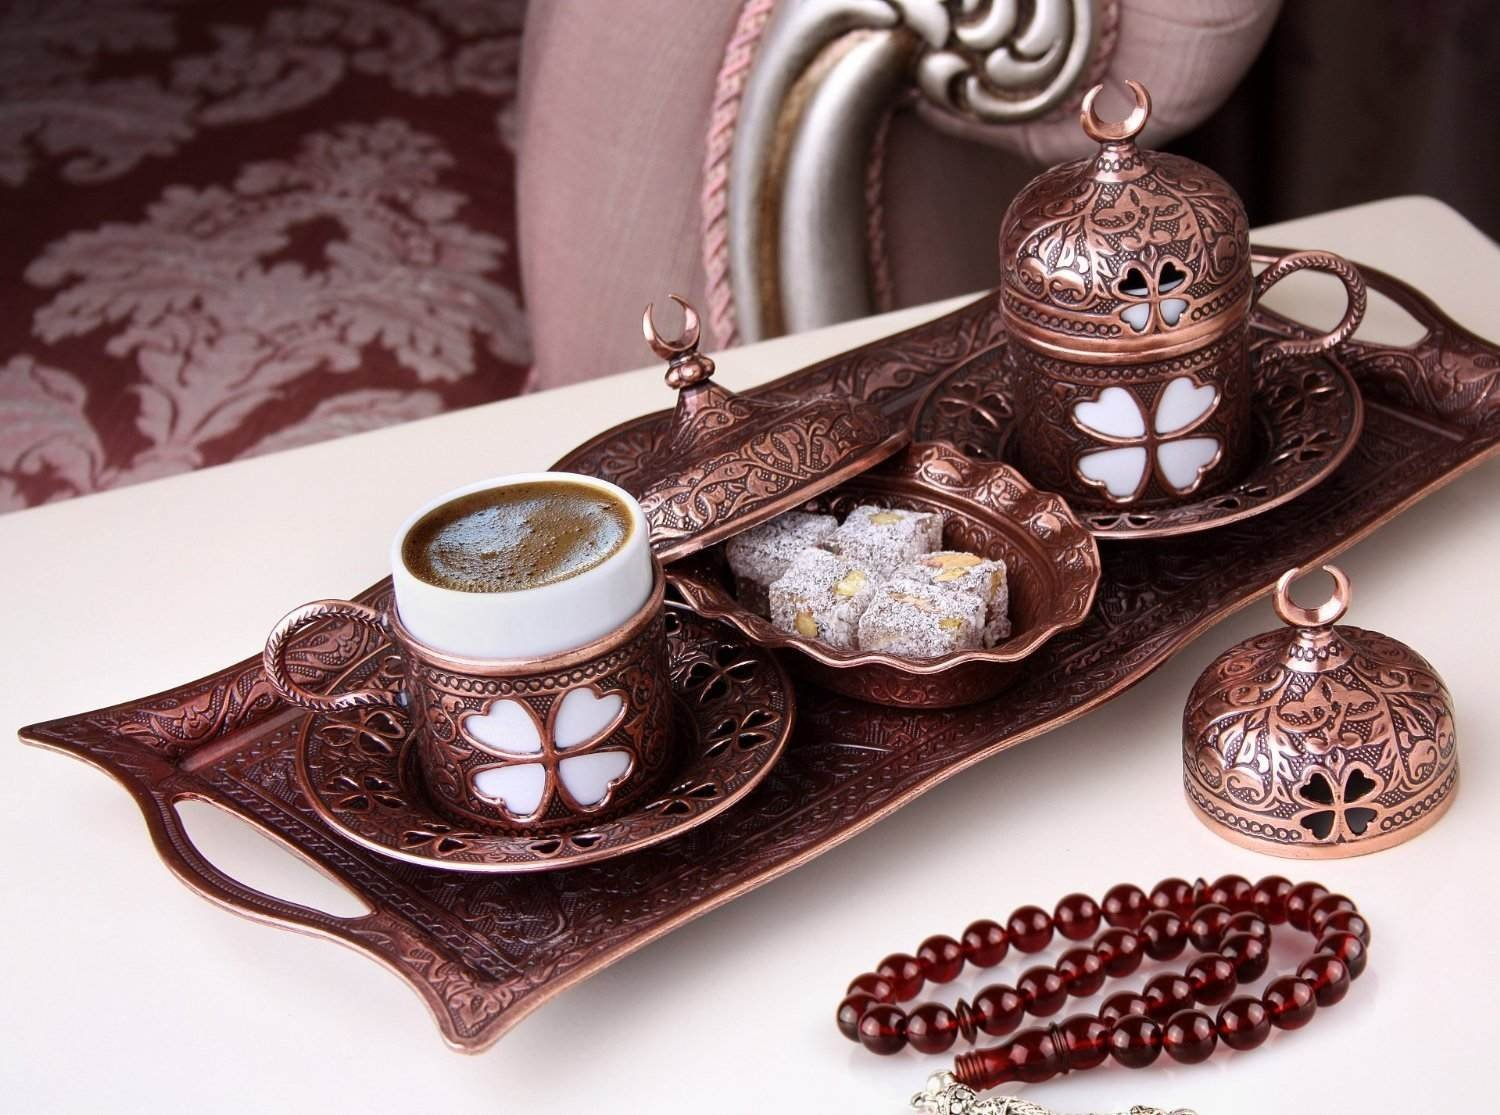 Premium Turkish Greek Arabic Coffee Espresso Serving Set for 2,Cups Saucers Lids Tray Delight Sugar Dish 11pc (Antique Brown) by CopperBull (Image #2)